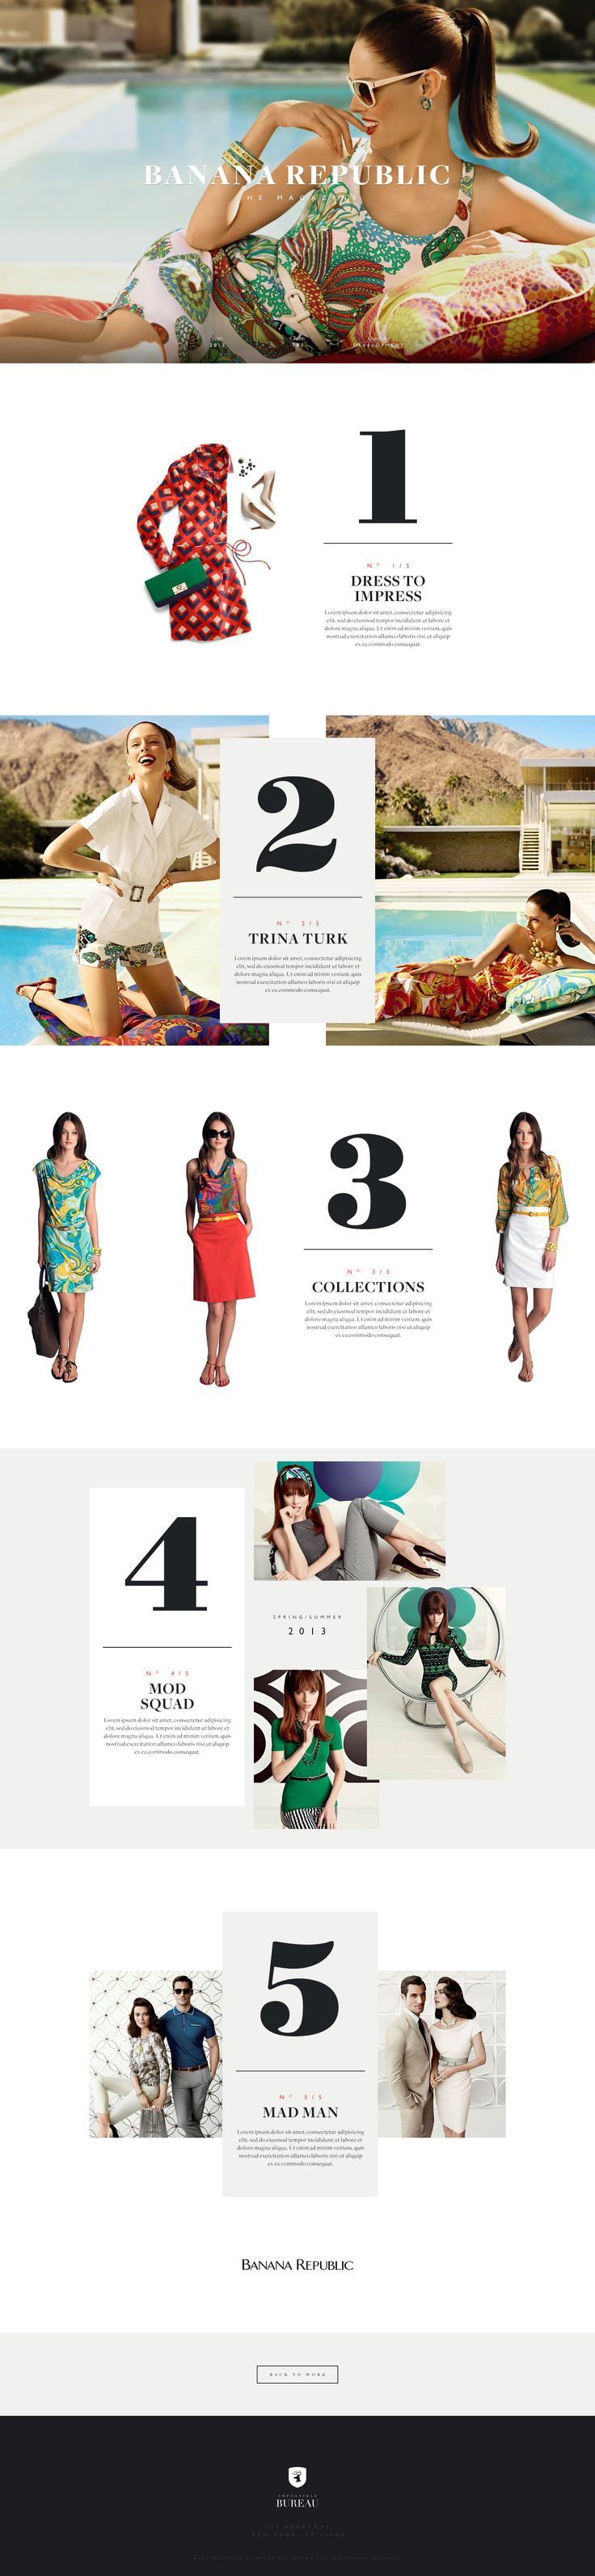 Banana Republic Web